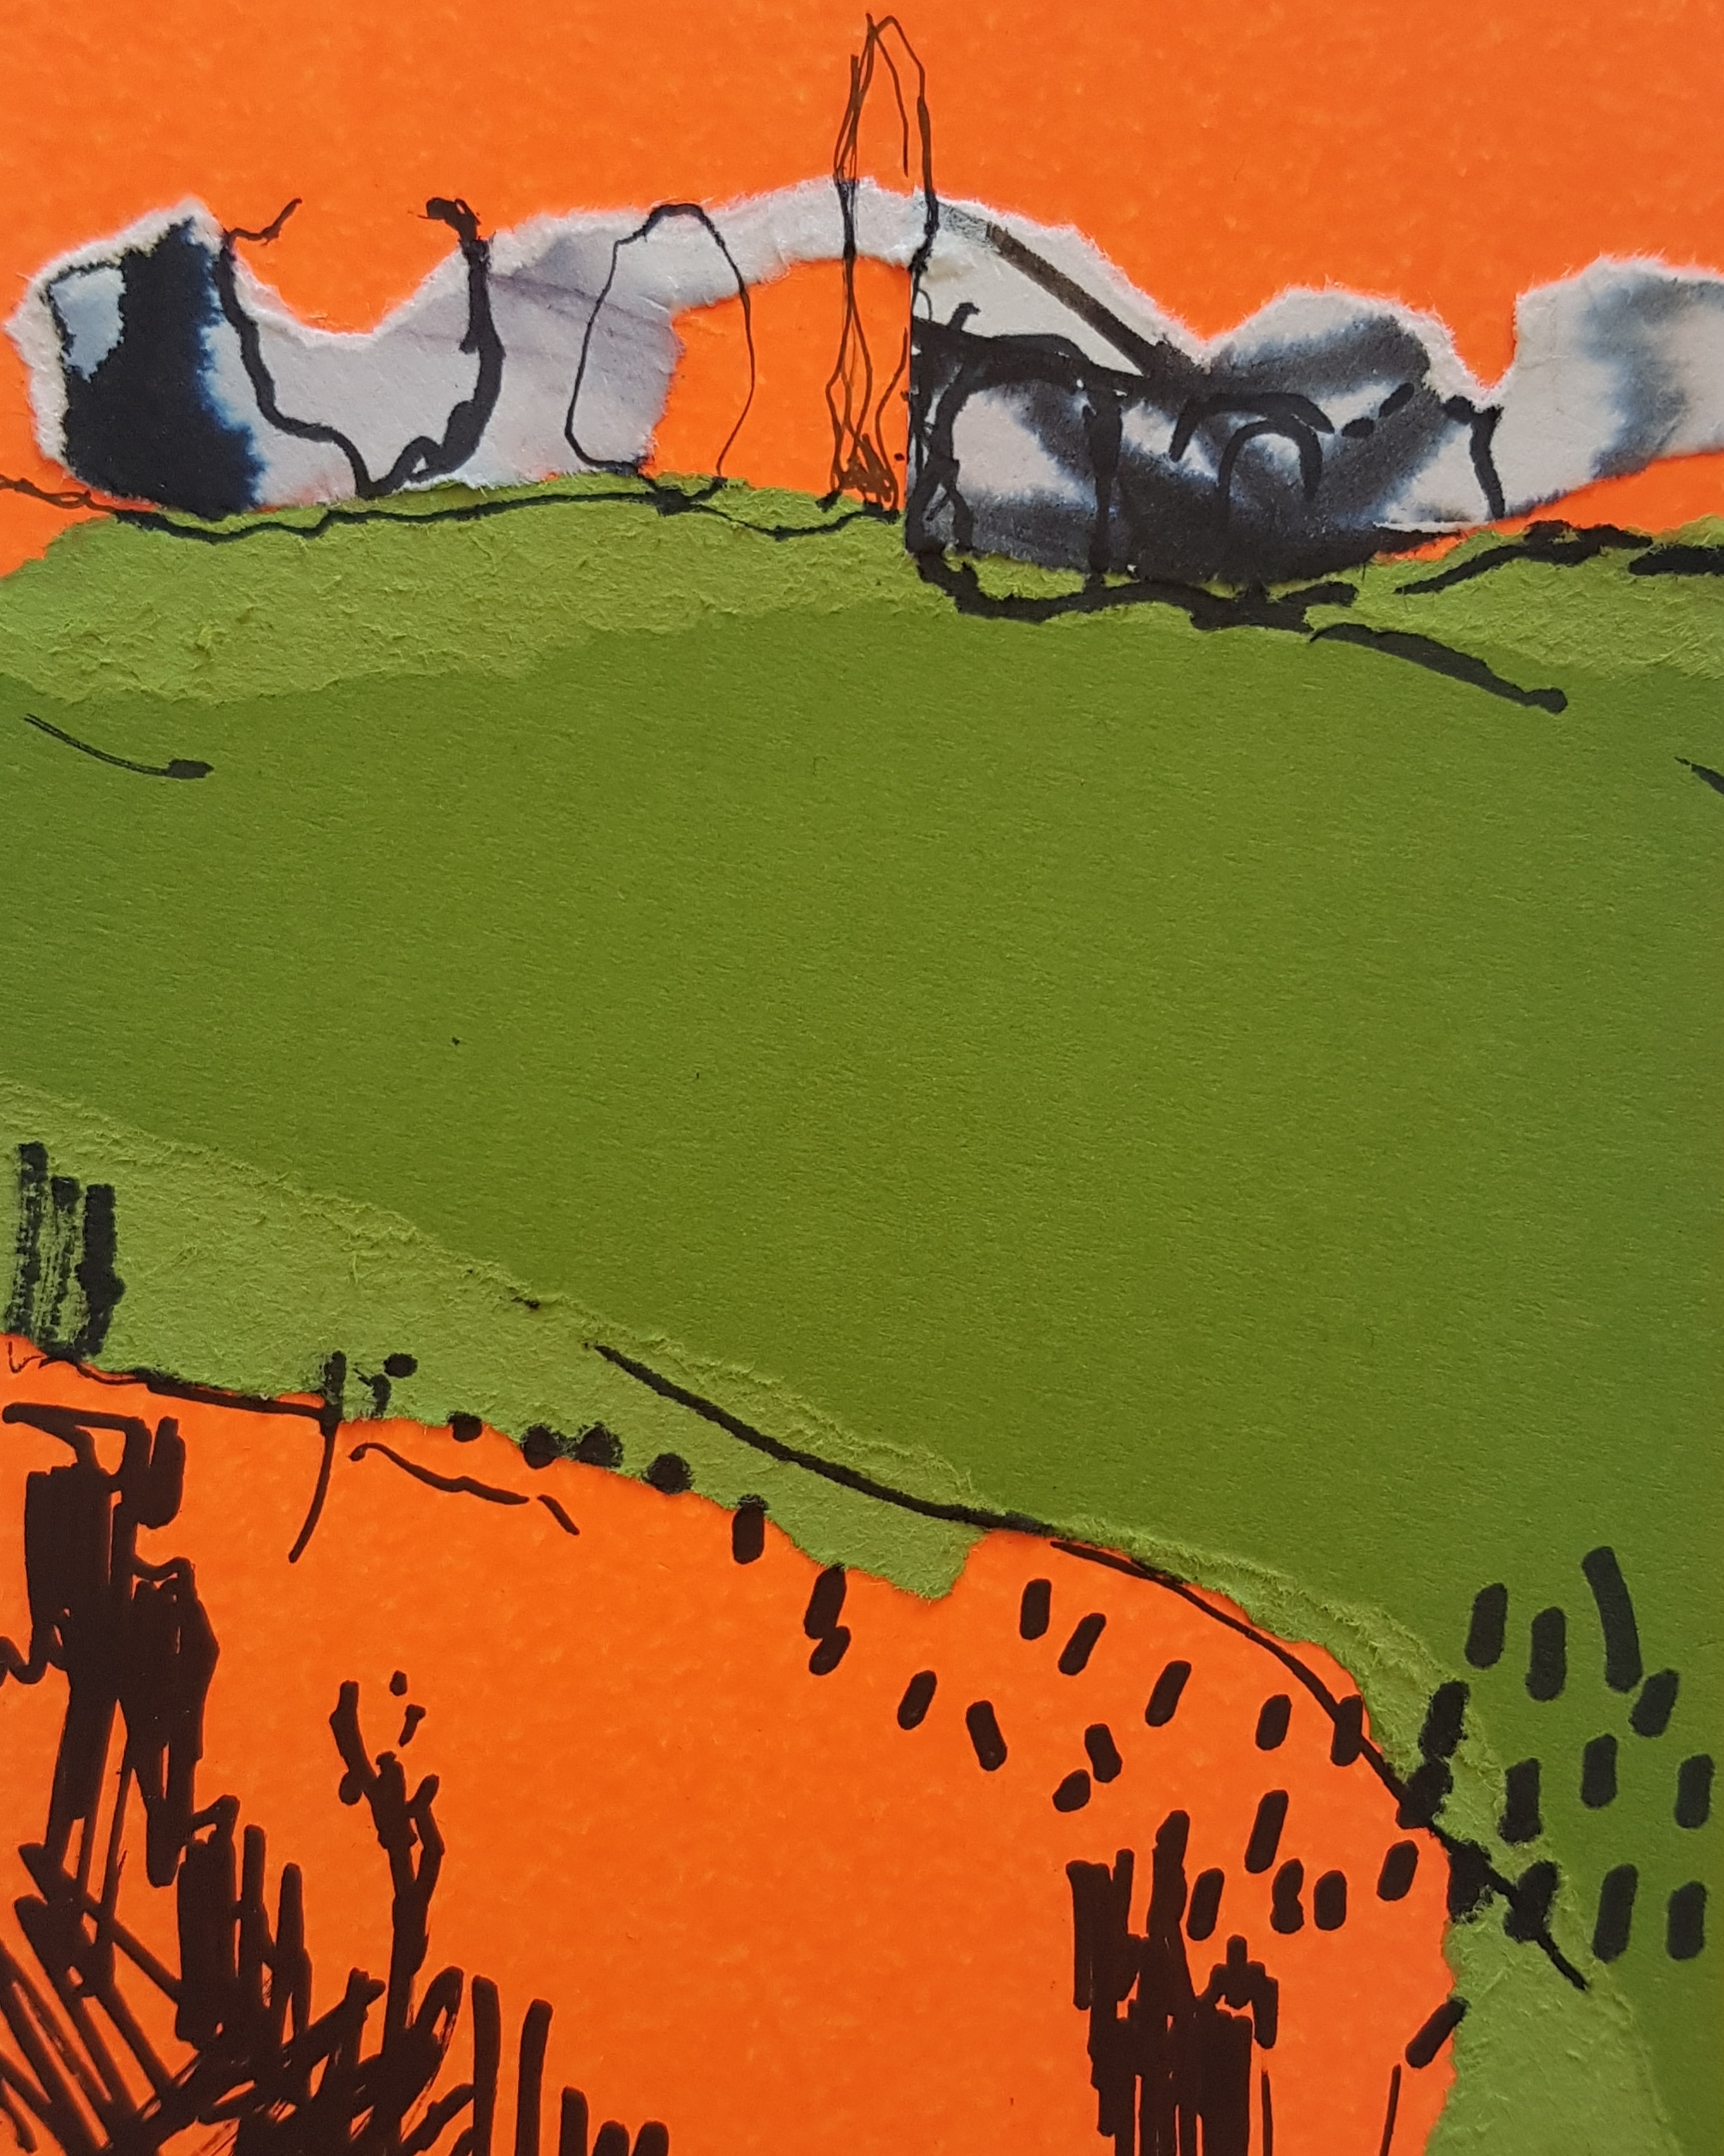 'Green field on orange'